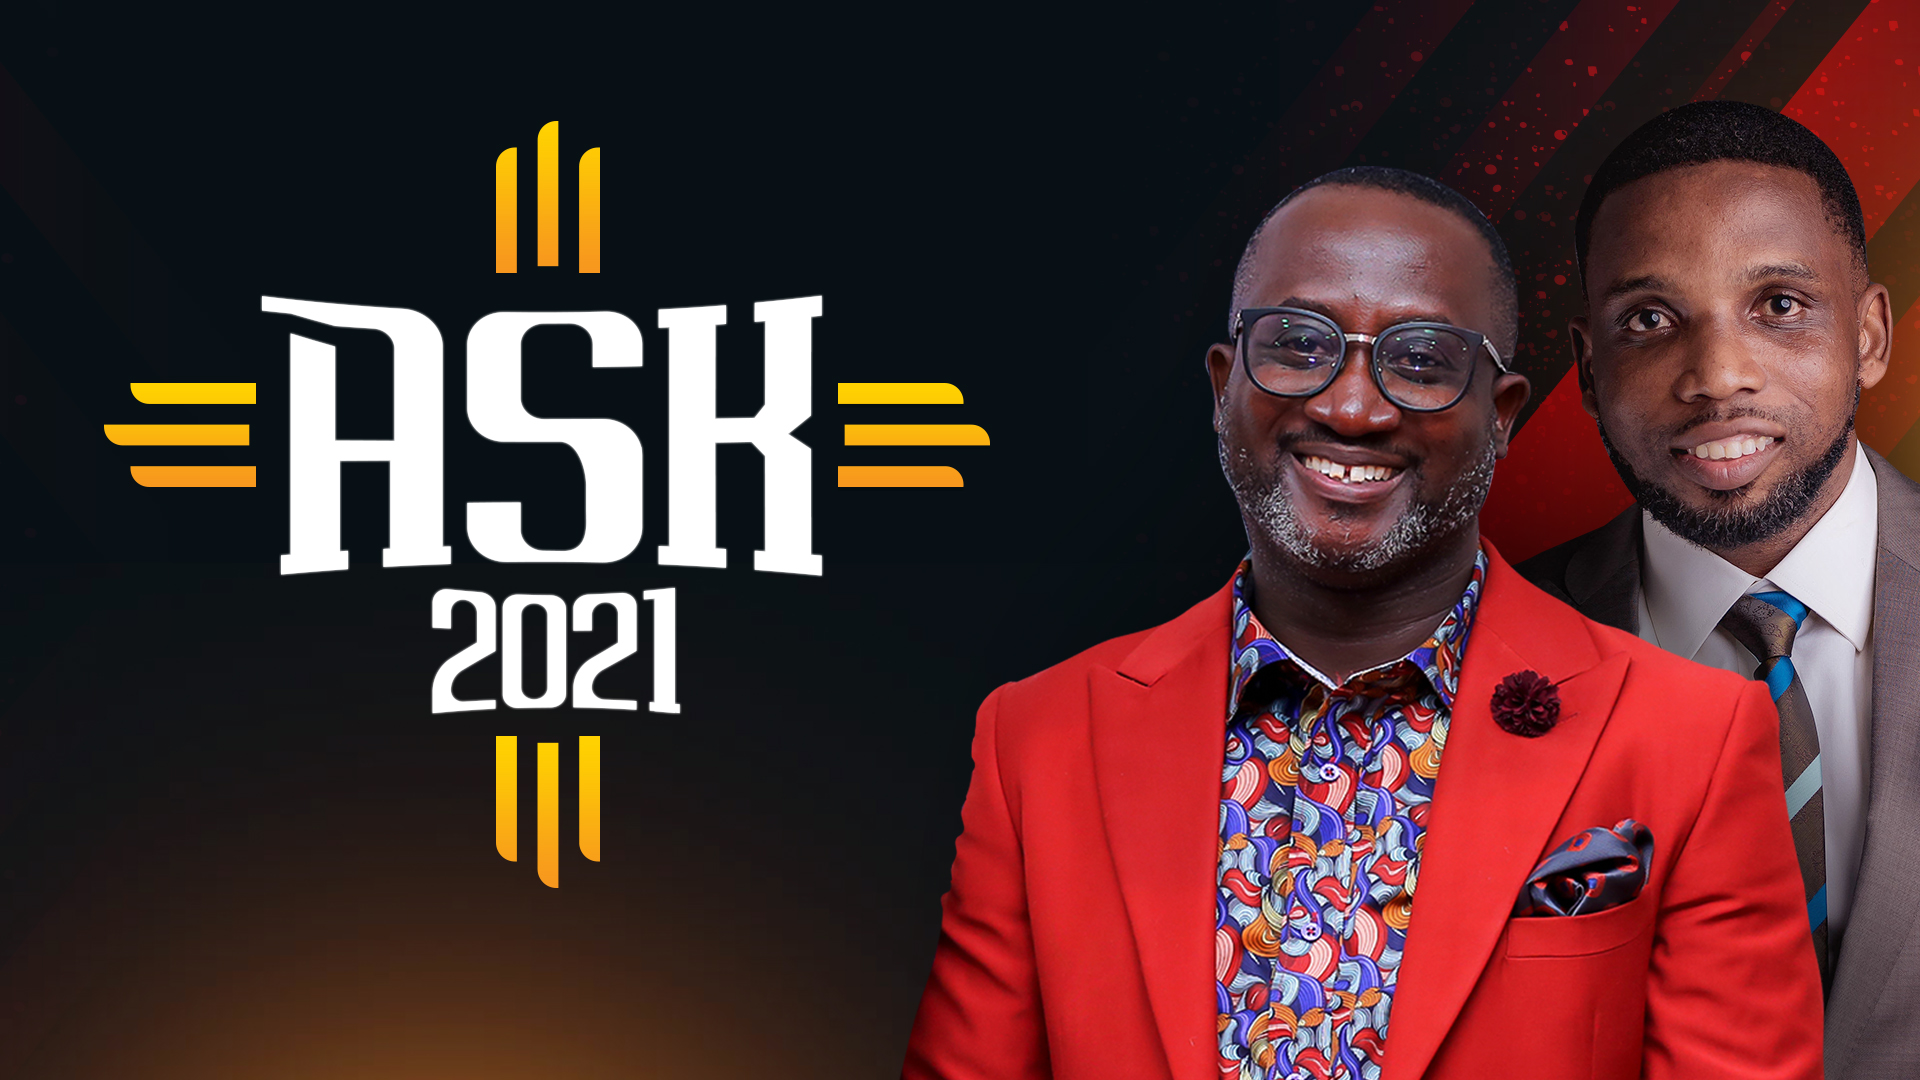 ASK CONFERENCE 2021 DAY 1 - Realms Of Glory With Prophet Ocloo